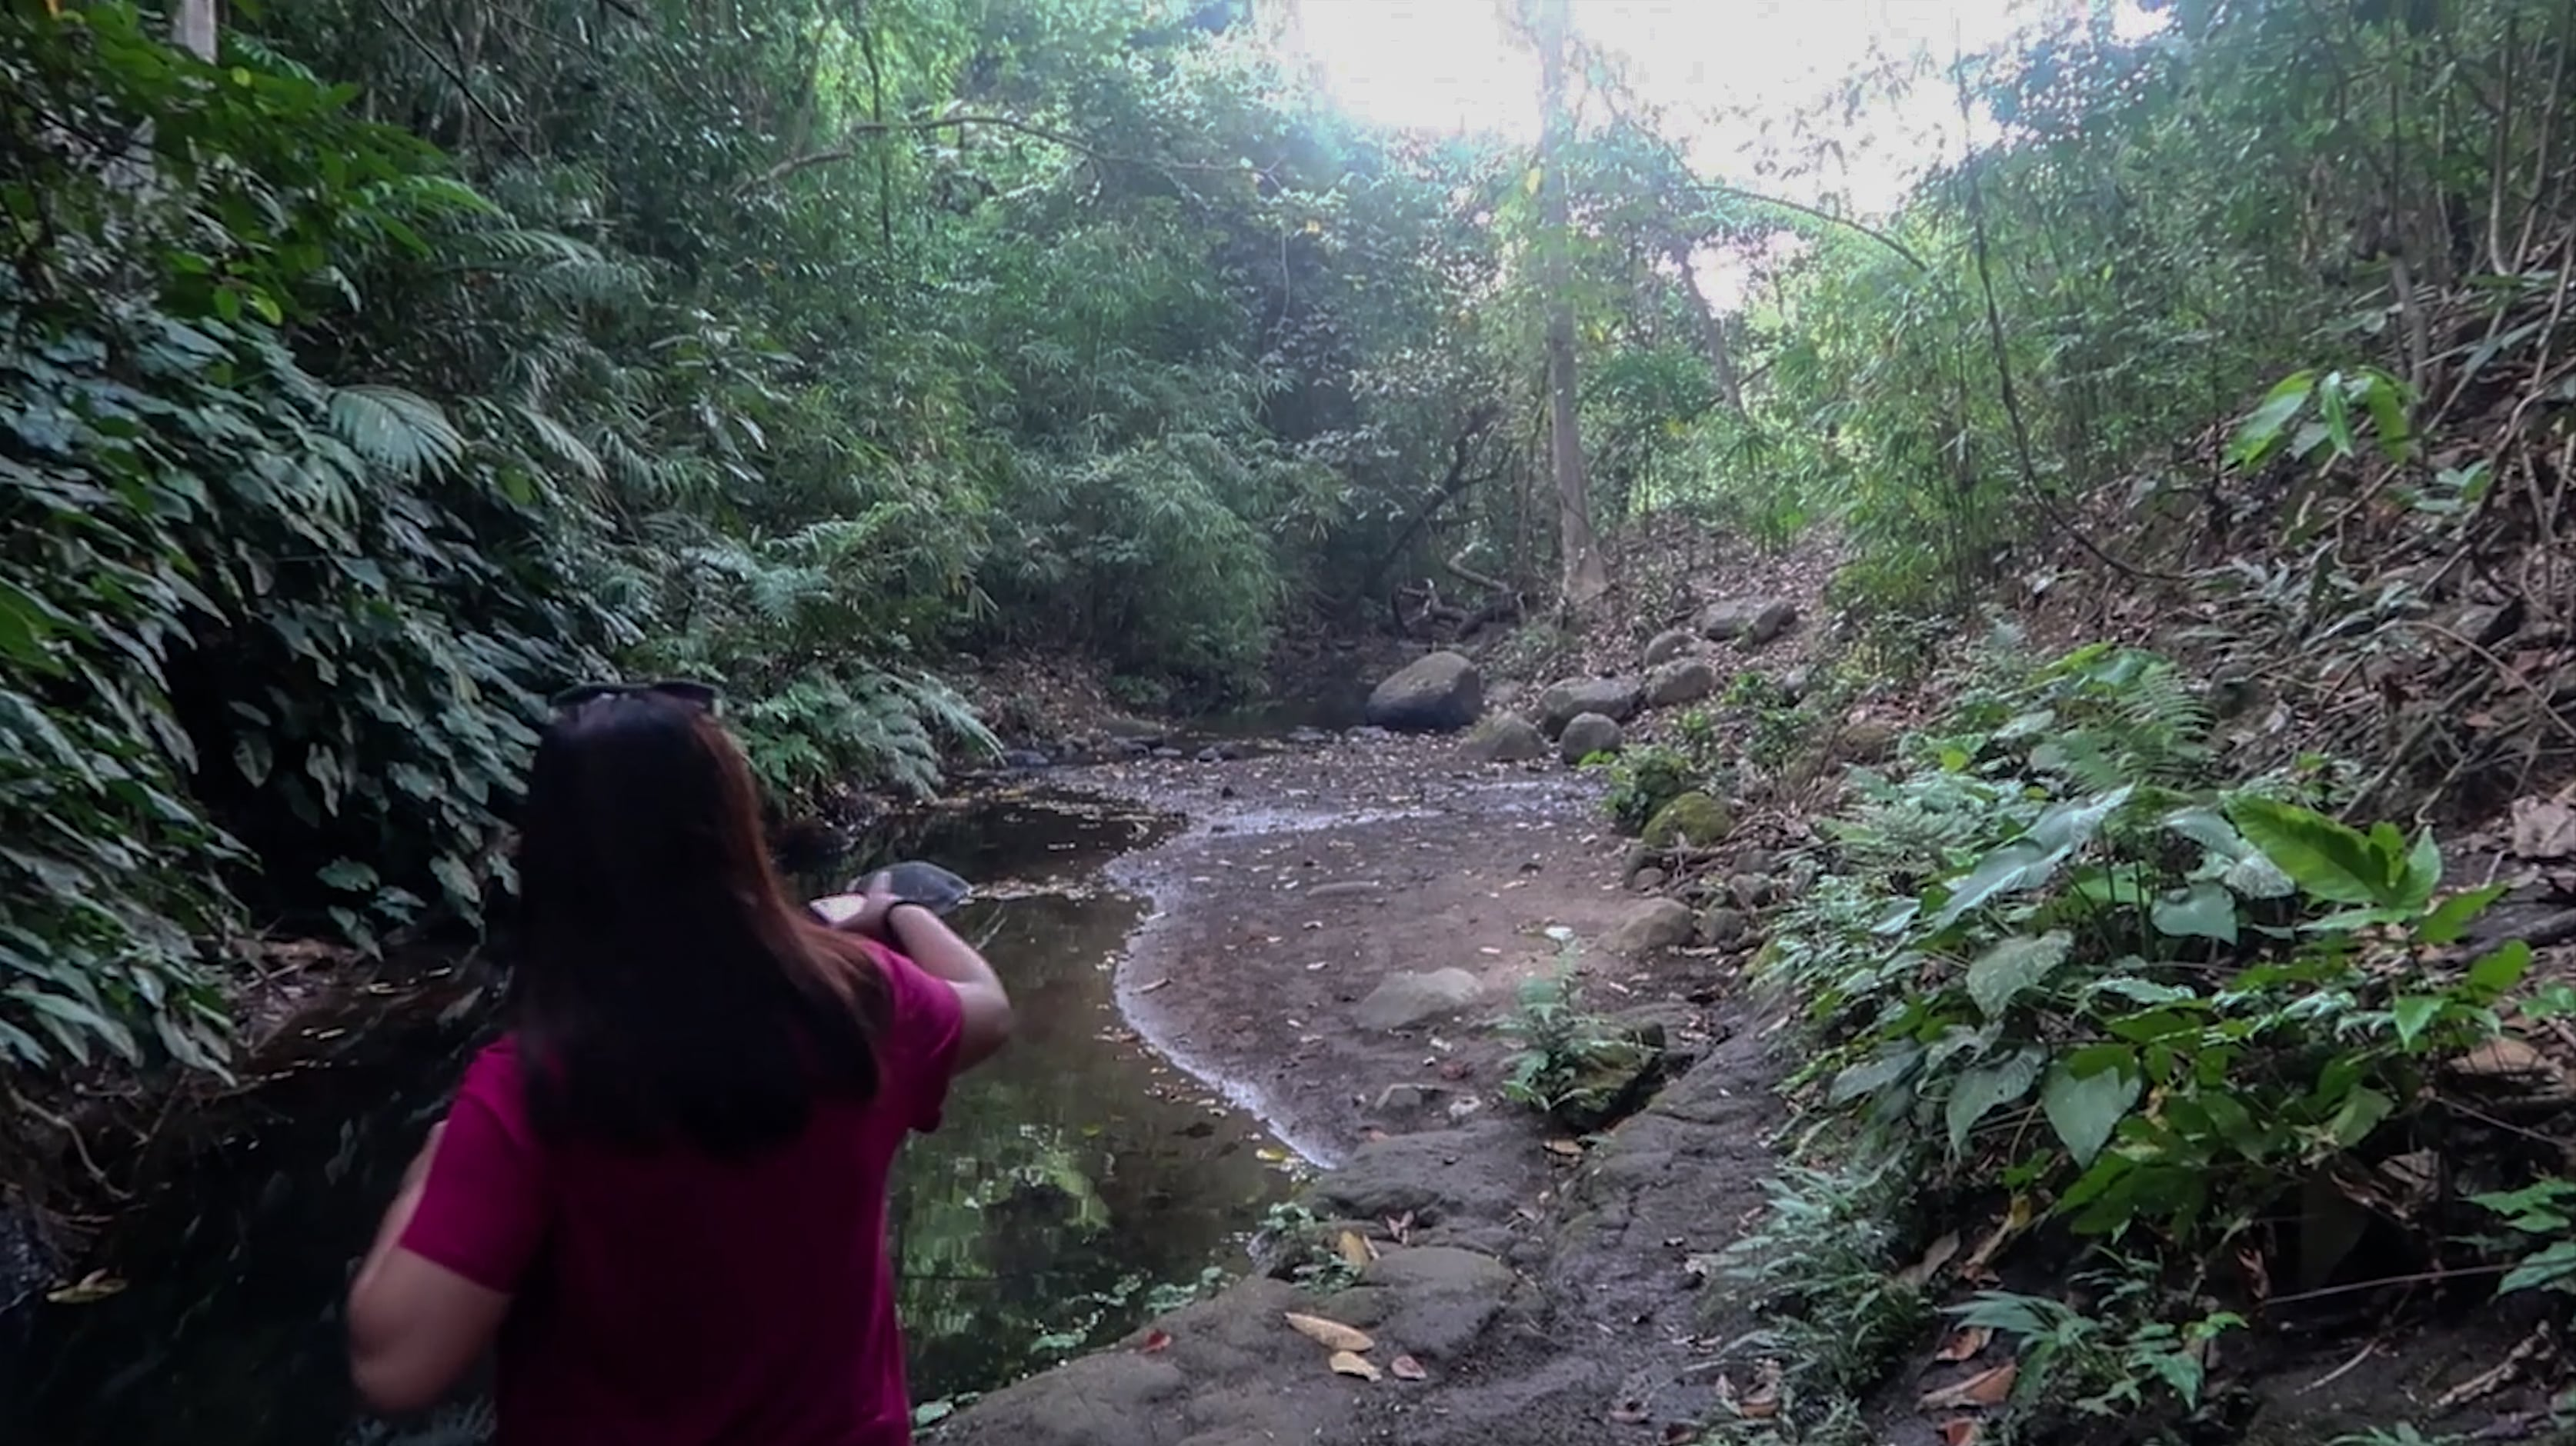 melody somido pointing in direction at picturesque forest in subic zambales philippines